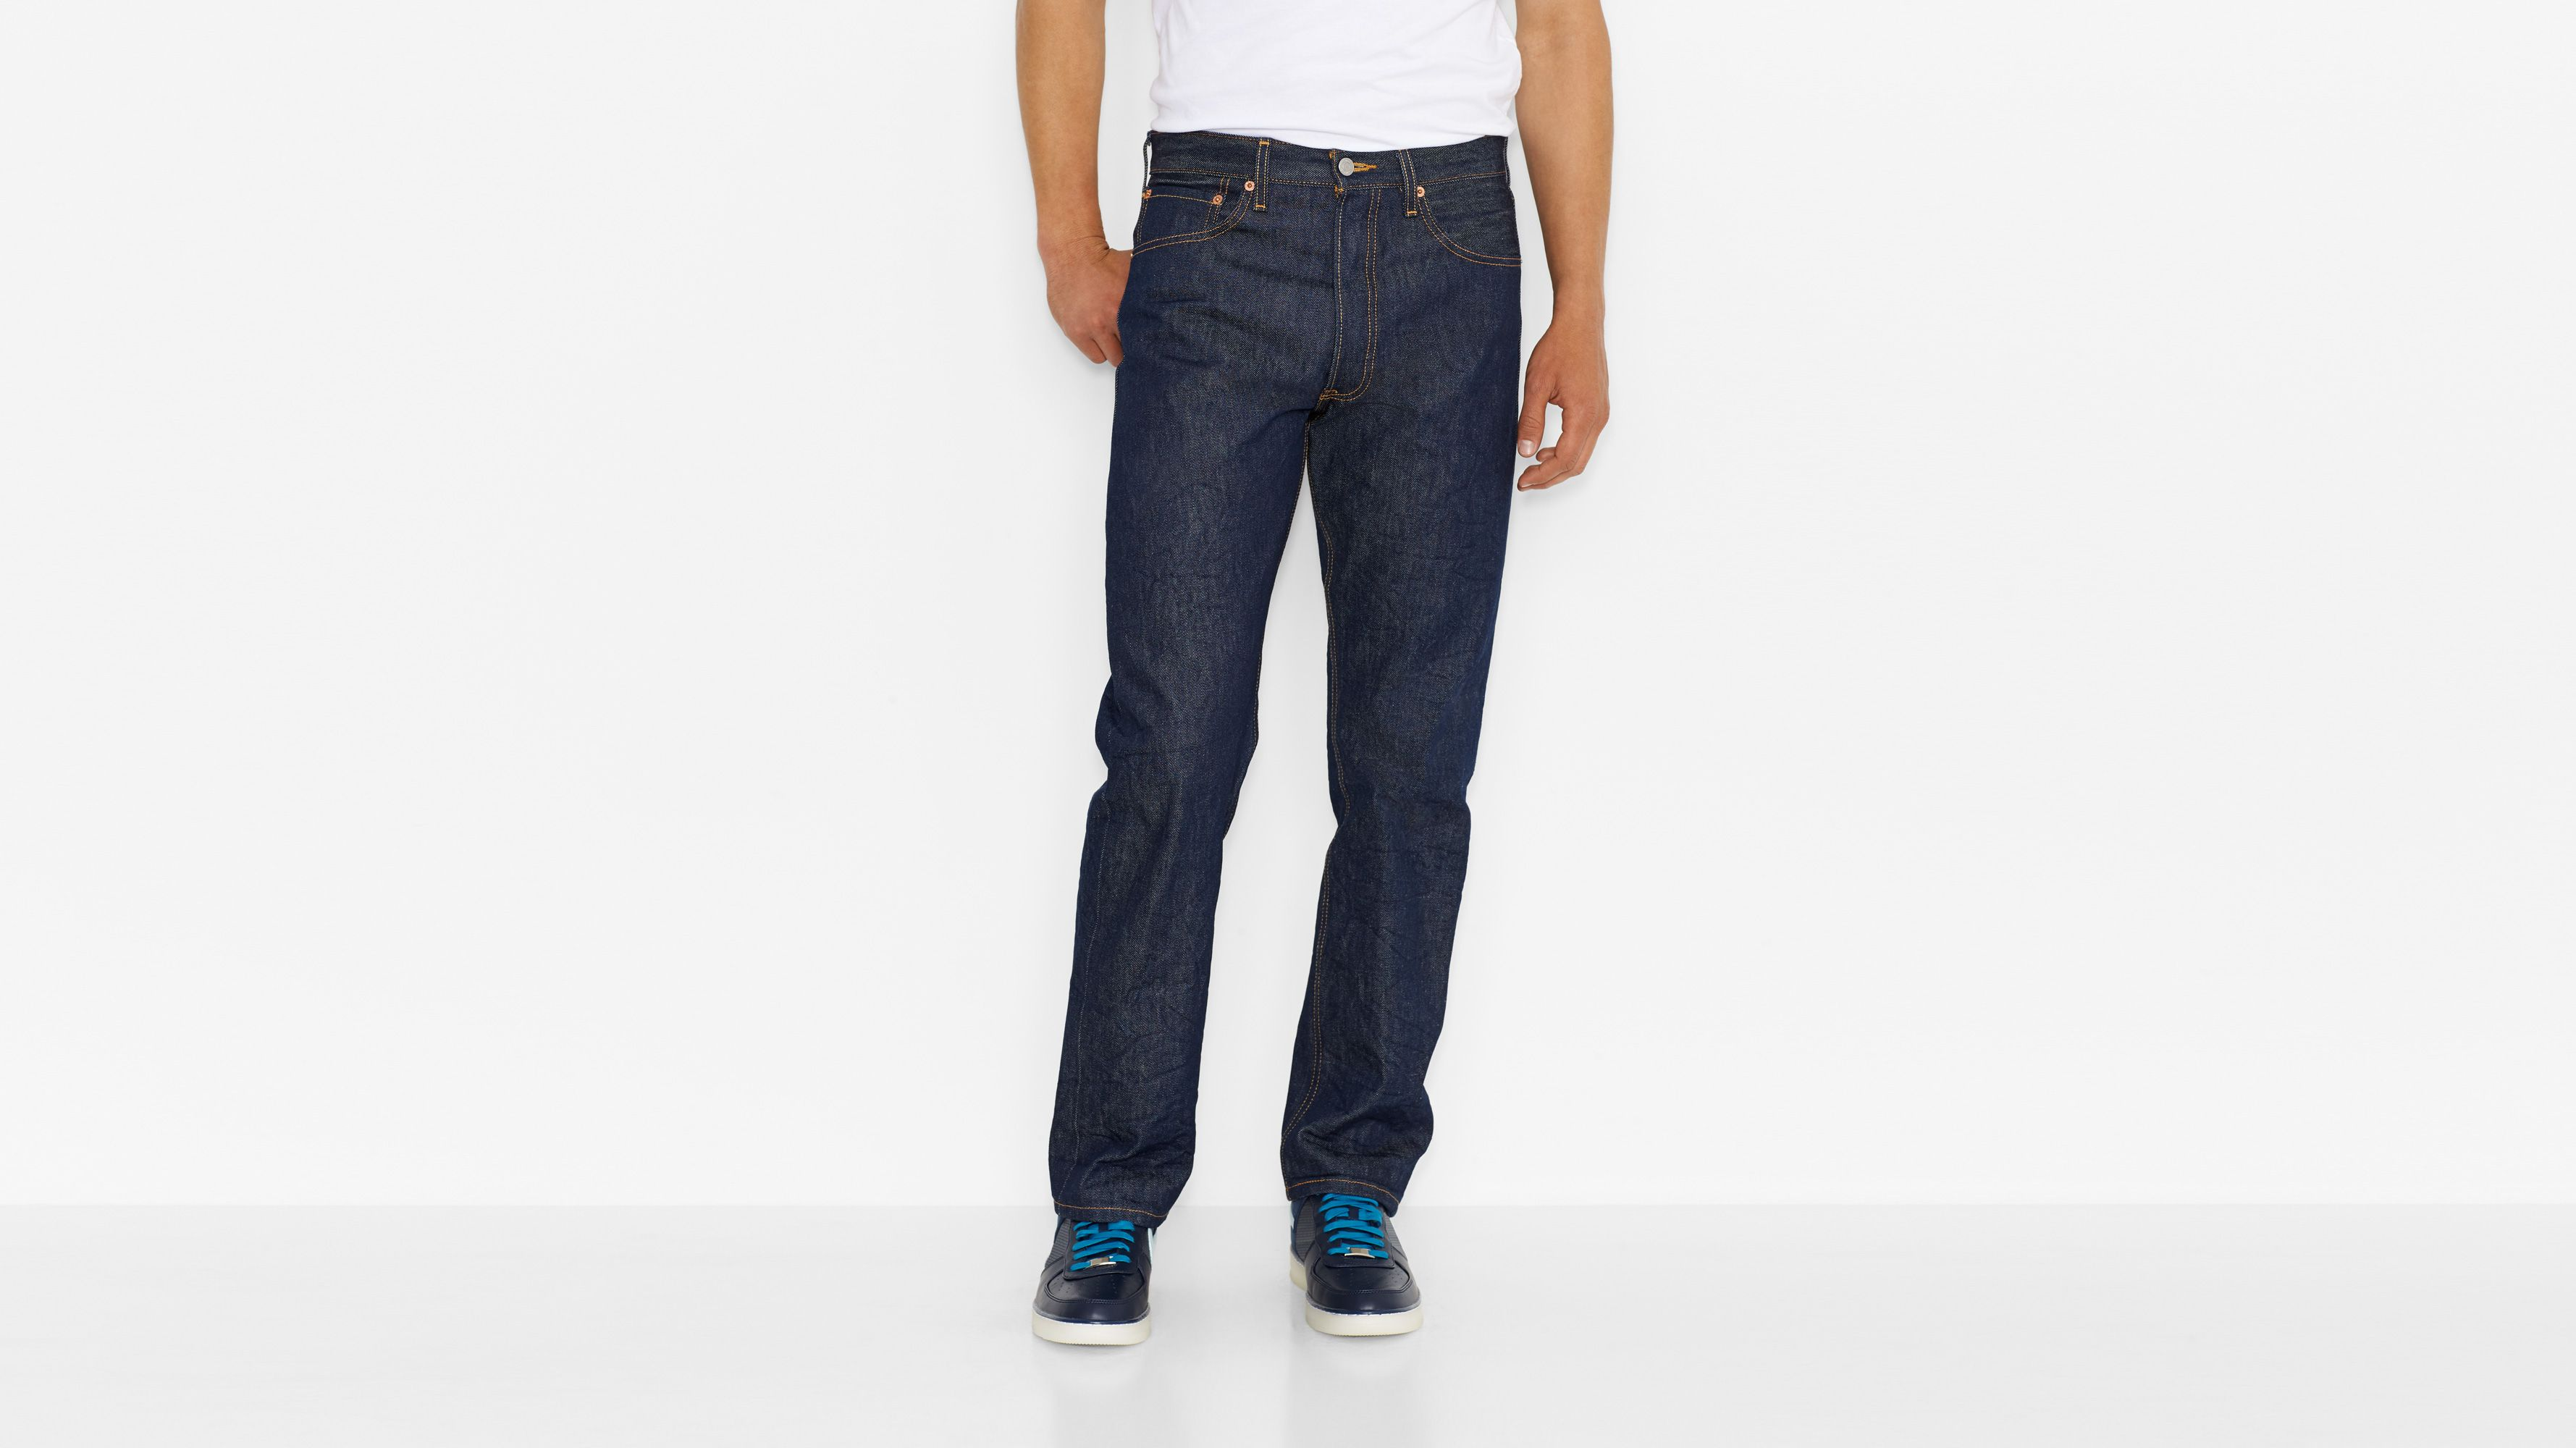 501® Original Shrink-to-Fit™ Jeans - Rigid